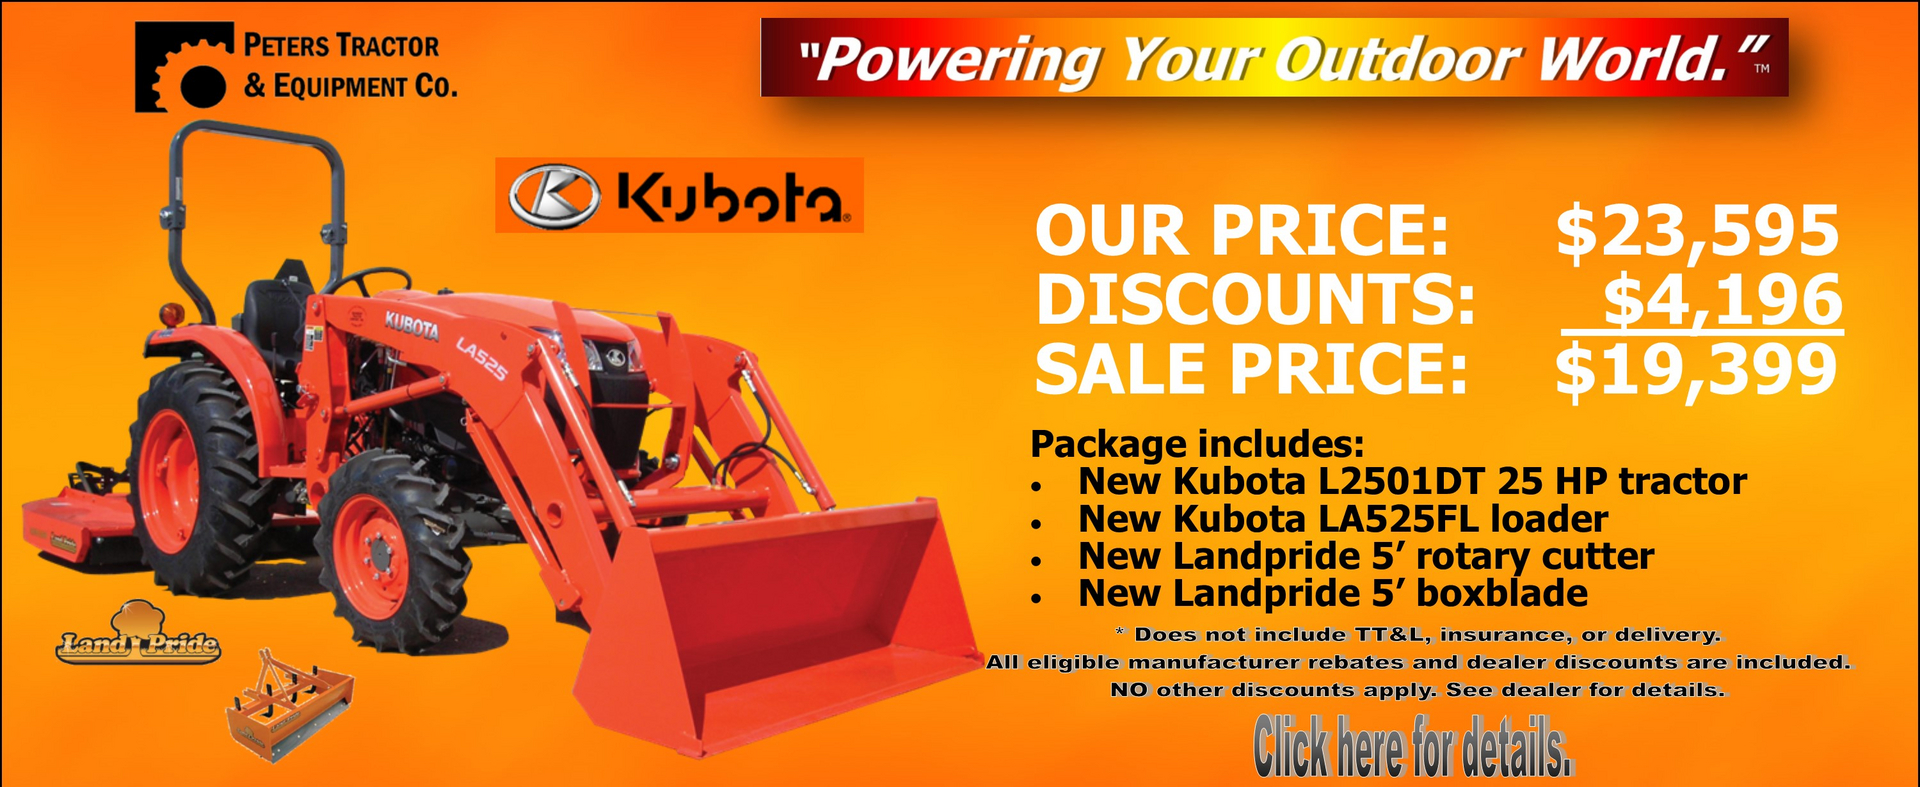 Peters Tractor & Equipment Co  - Kubota Tractor, Lawn Mowers